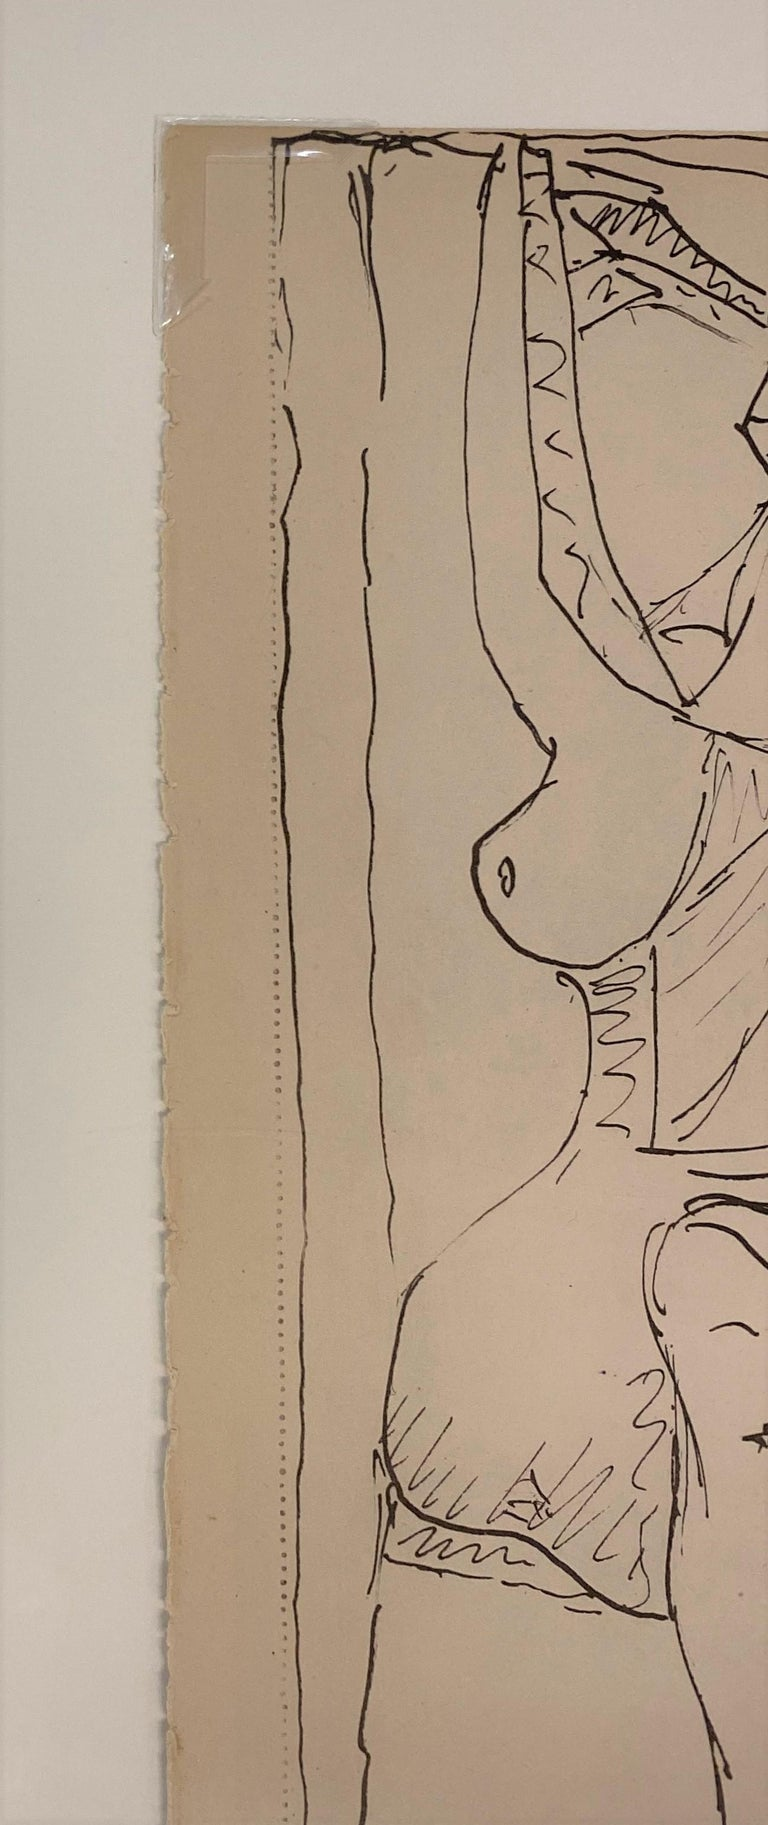 Royan Lithograph 19.6.40 For Sale 2